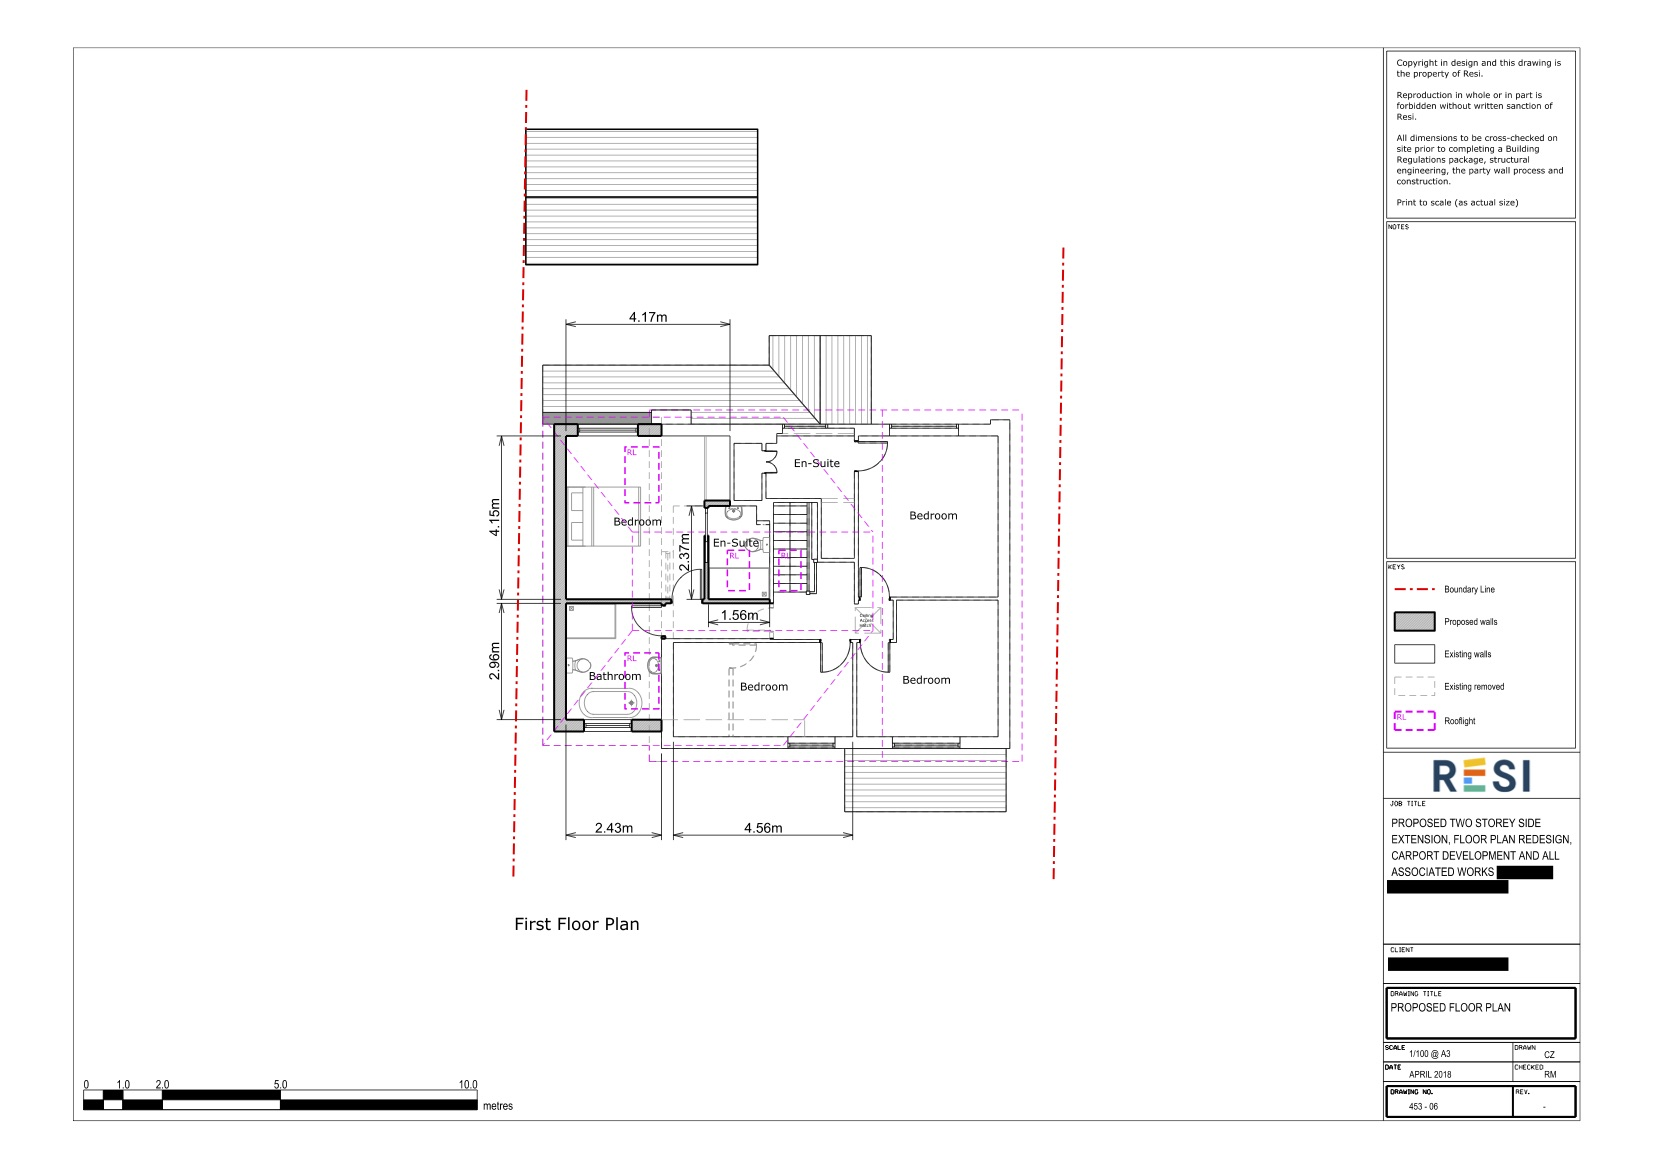 Architectural drawing package   first floor plans